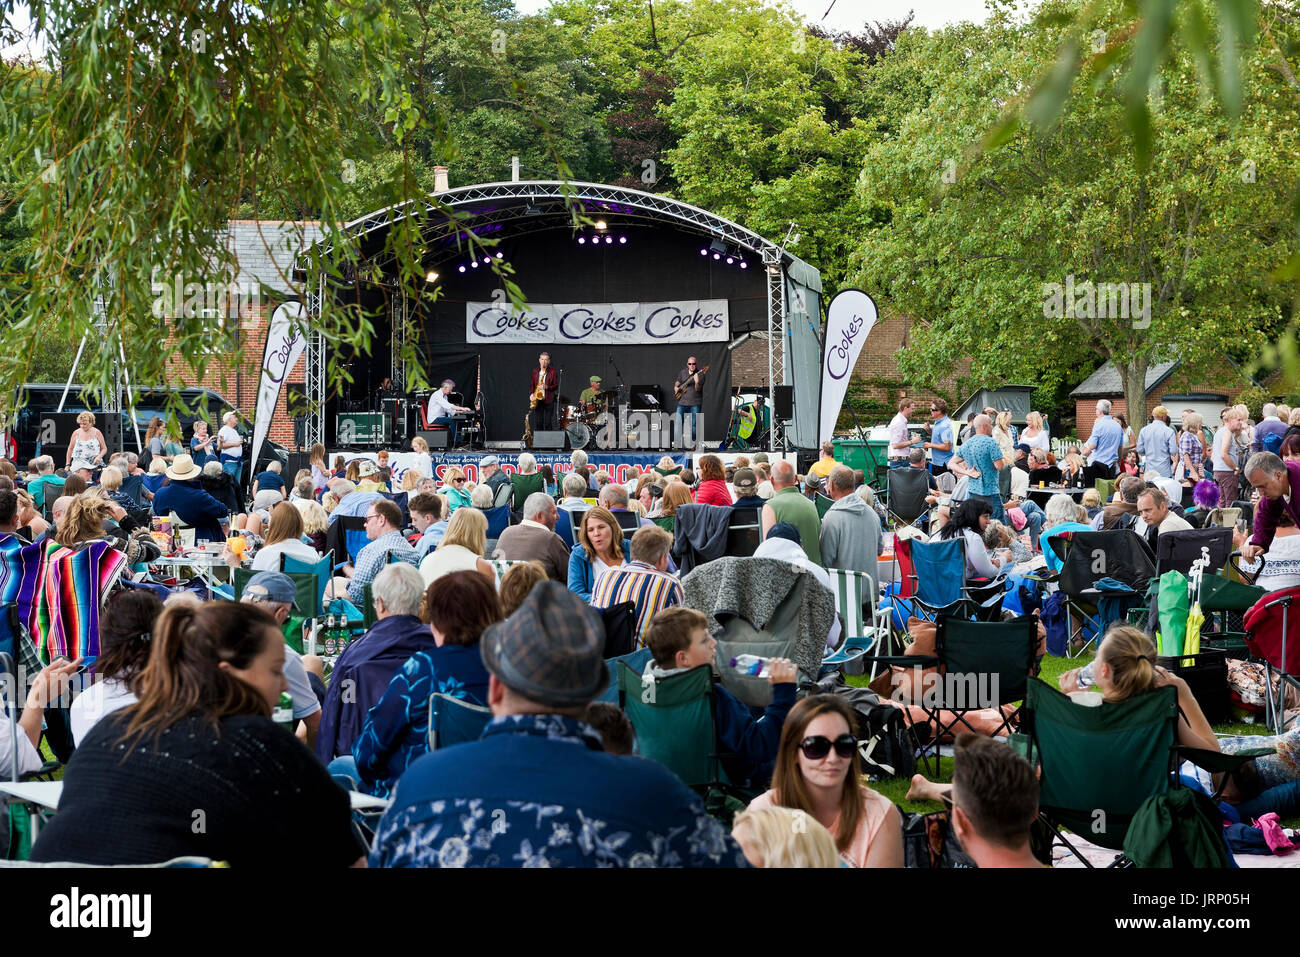 Christchurch, UK. 05th Aug, 2017. Large crowds attend the 23rd annual free jazz festival. The Snake Davis Band entertain crowds during the afternoon. Credit: Roger Allen Photography/Alamy Live News - Stock Image